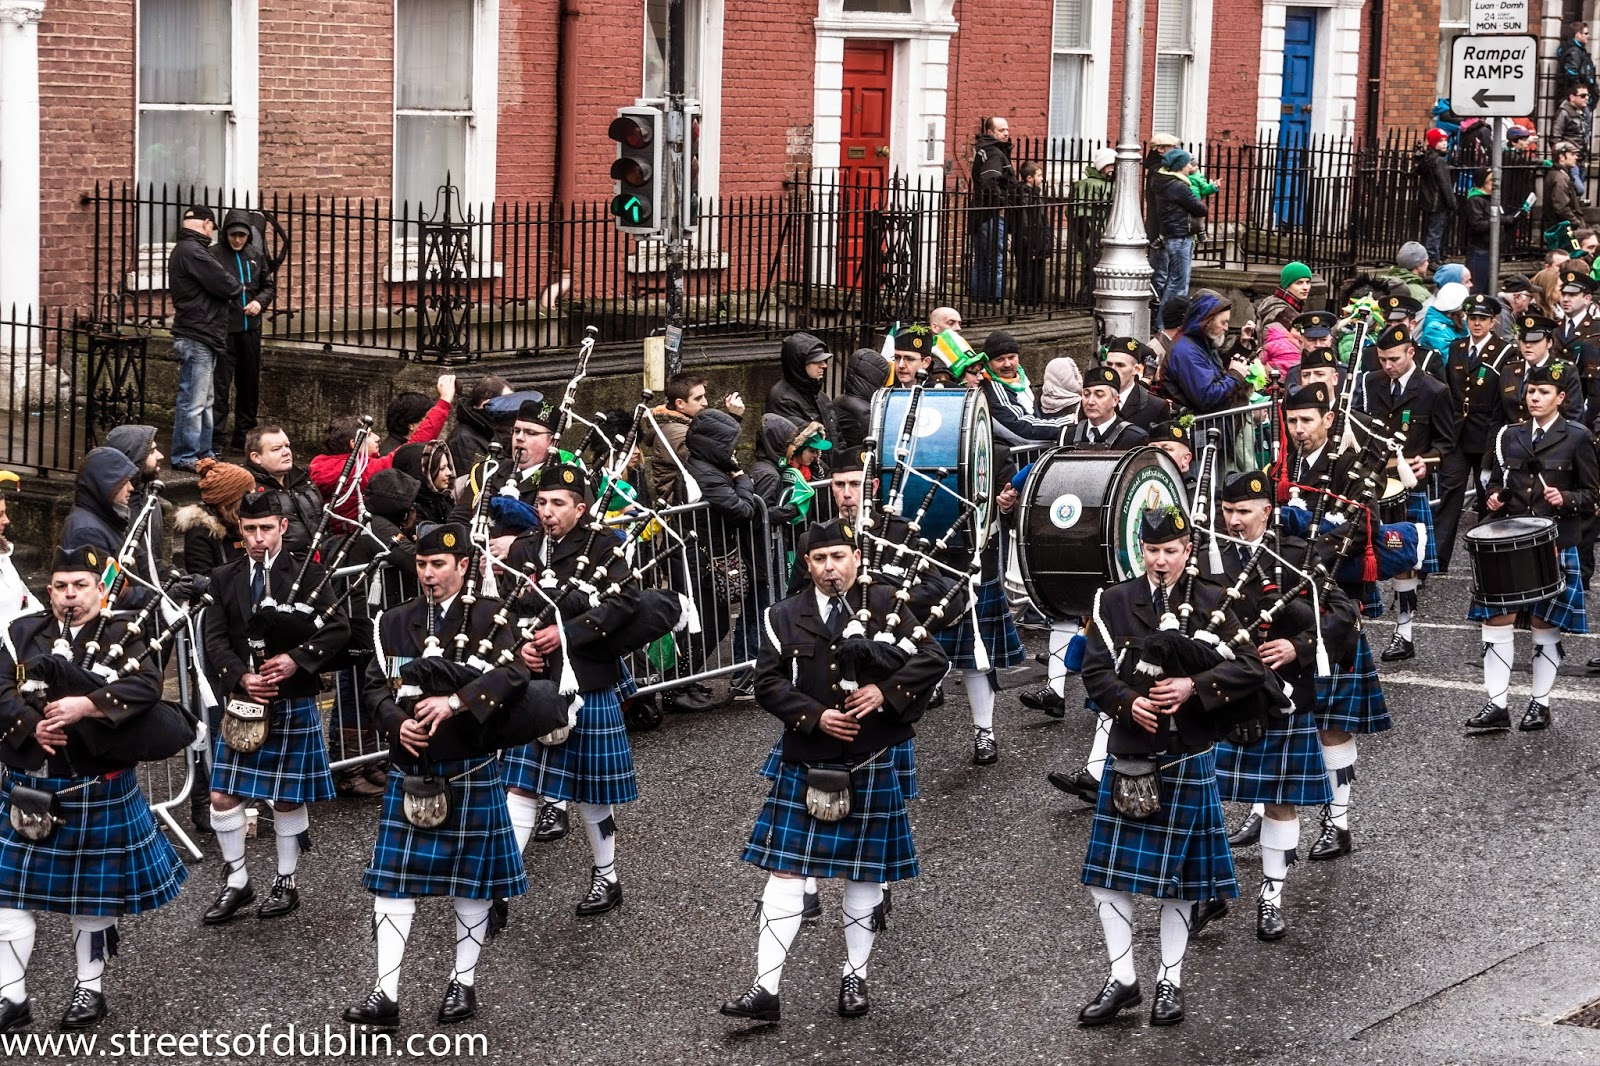 Frases De st-st patrick-saint patrick: Happy St Patick's Day  Bagpipers Band In